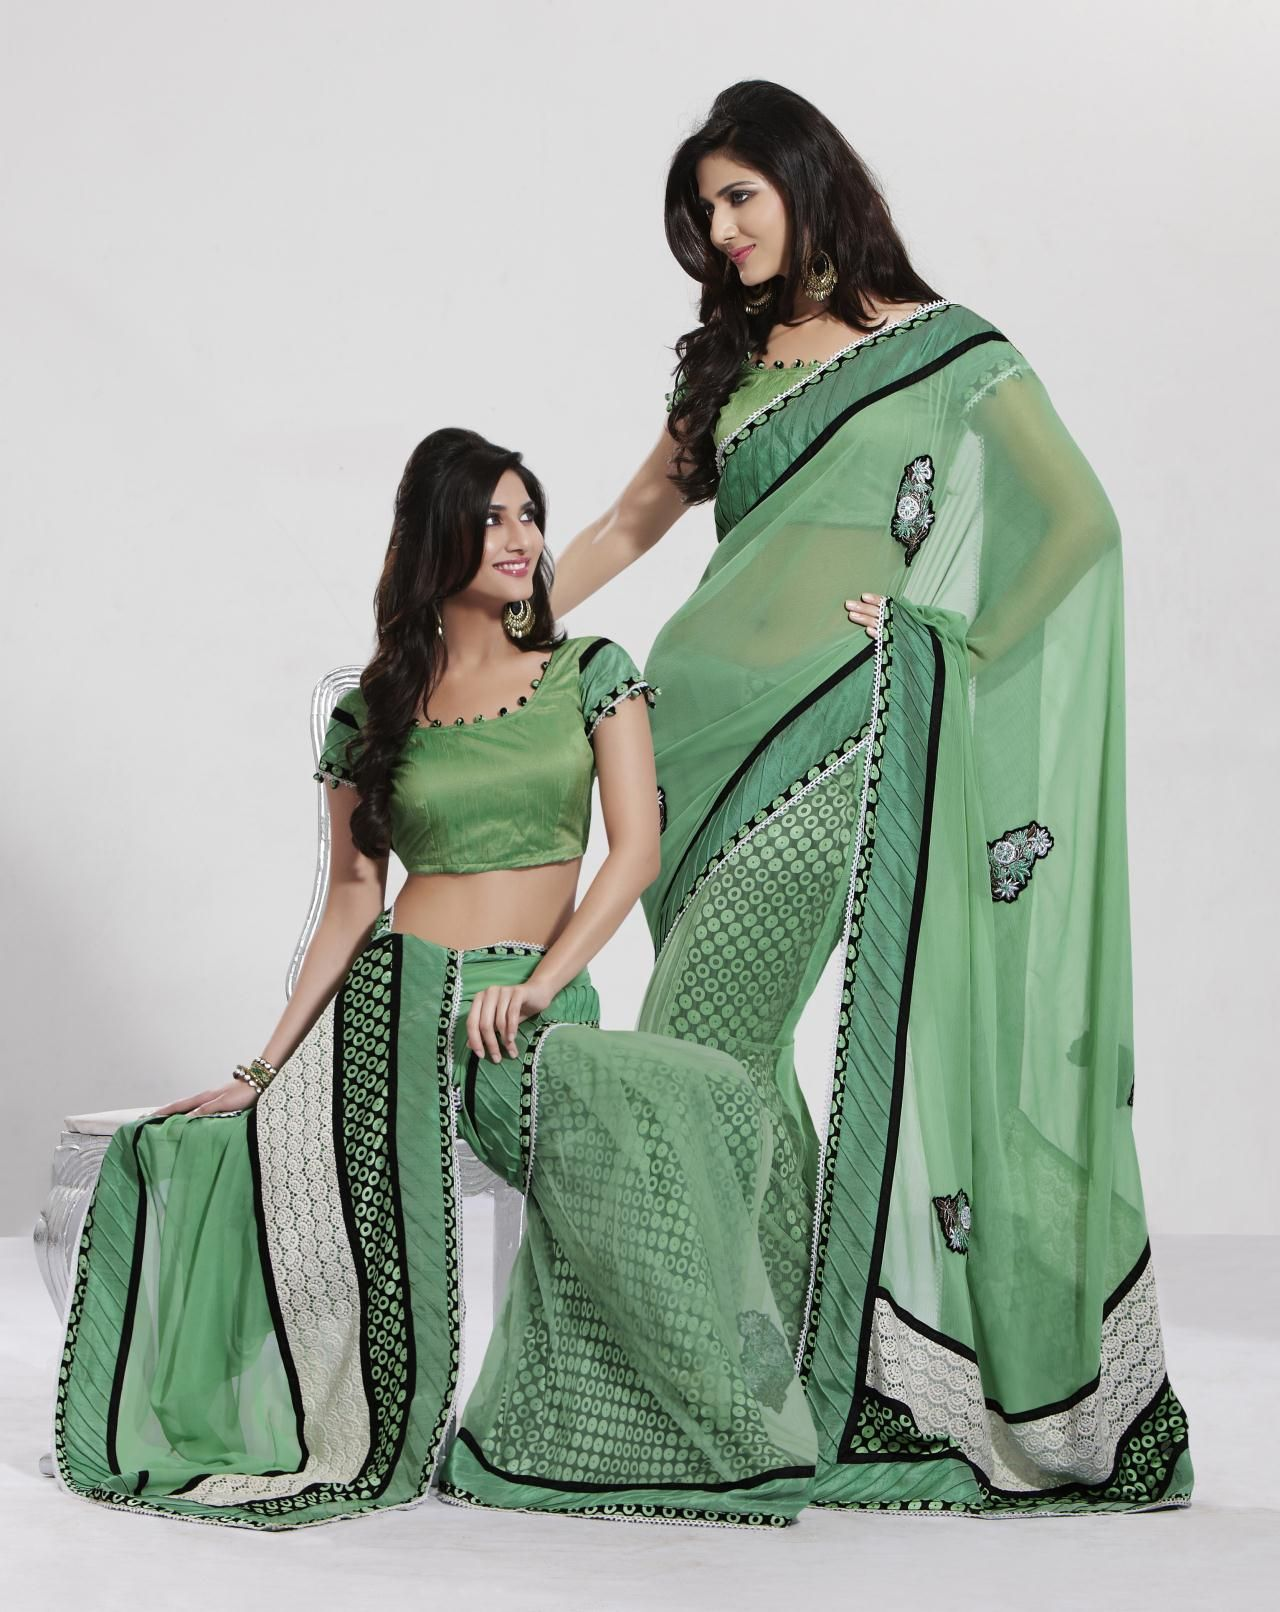 13b9a718d435d6 $54.96 Half Saree, Blouse Online, Saree Collection, Indian Sarees, Chiffon  Saree,